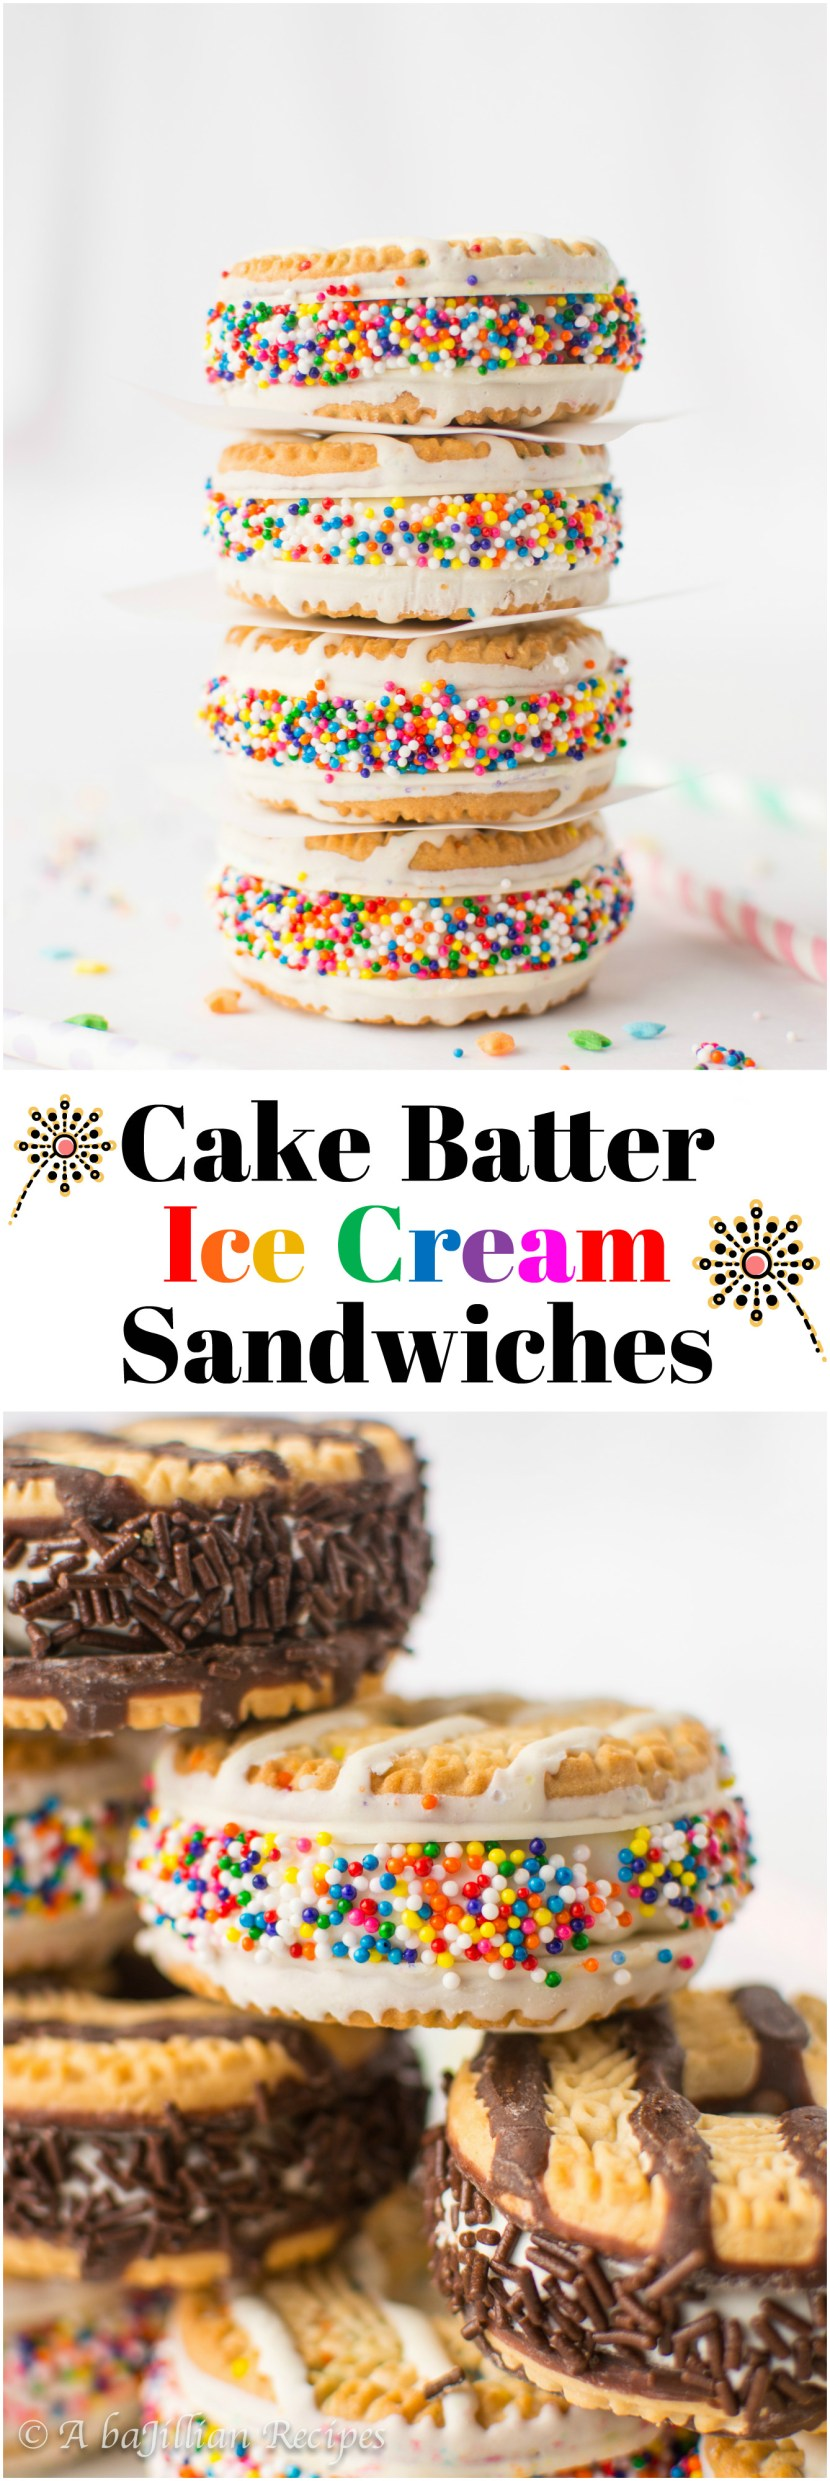 cake-batter-ice-cream-sandwiches-www-abajillianrecipes-com